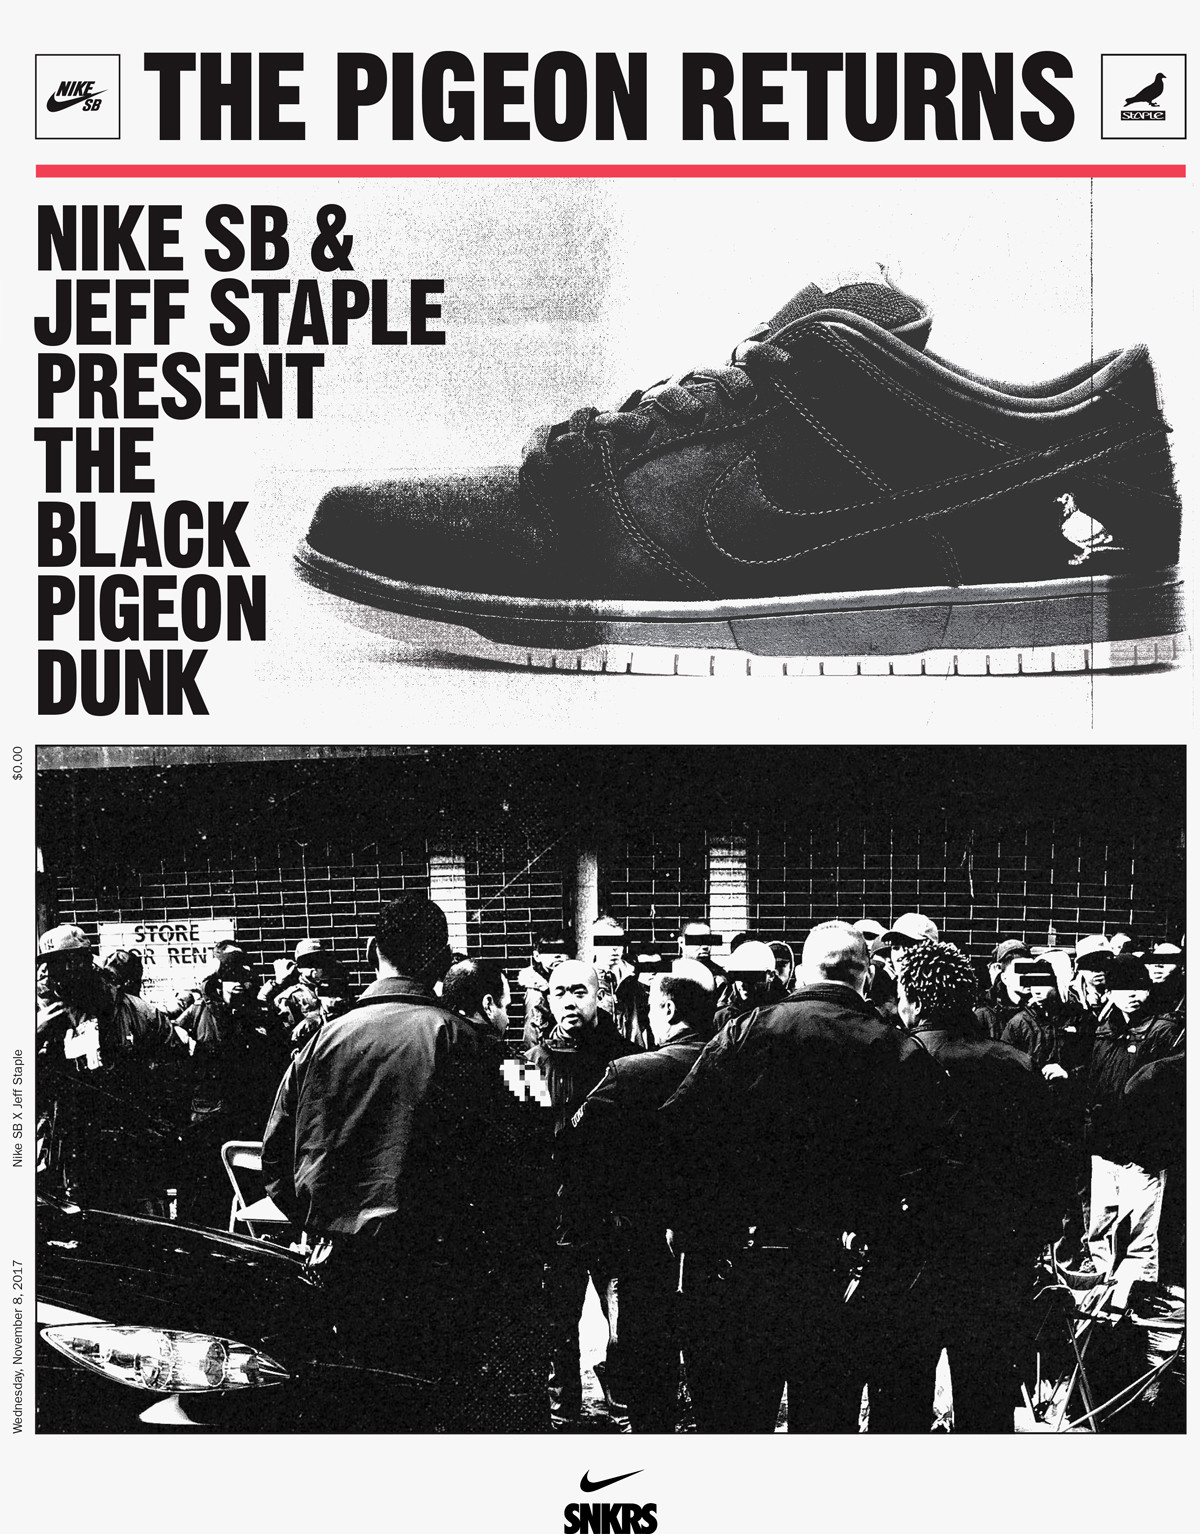 Nike SB Dunk Low Black Pigeon Release SNKRS Jeff Staple Newspaper